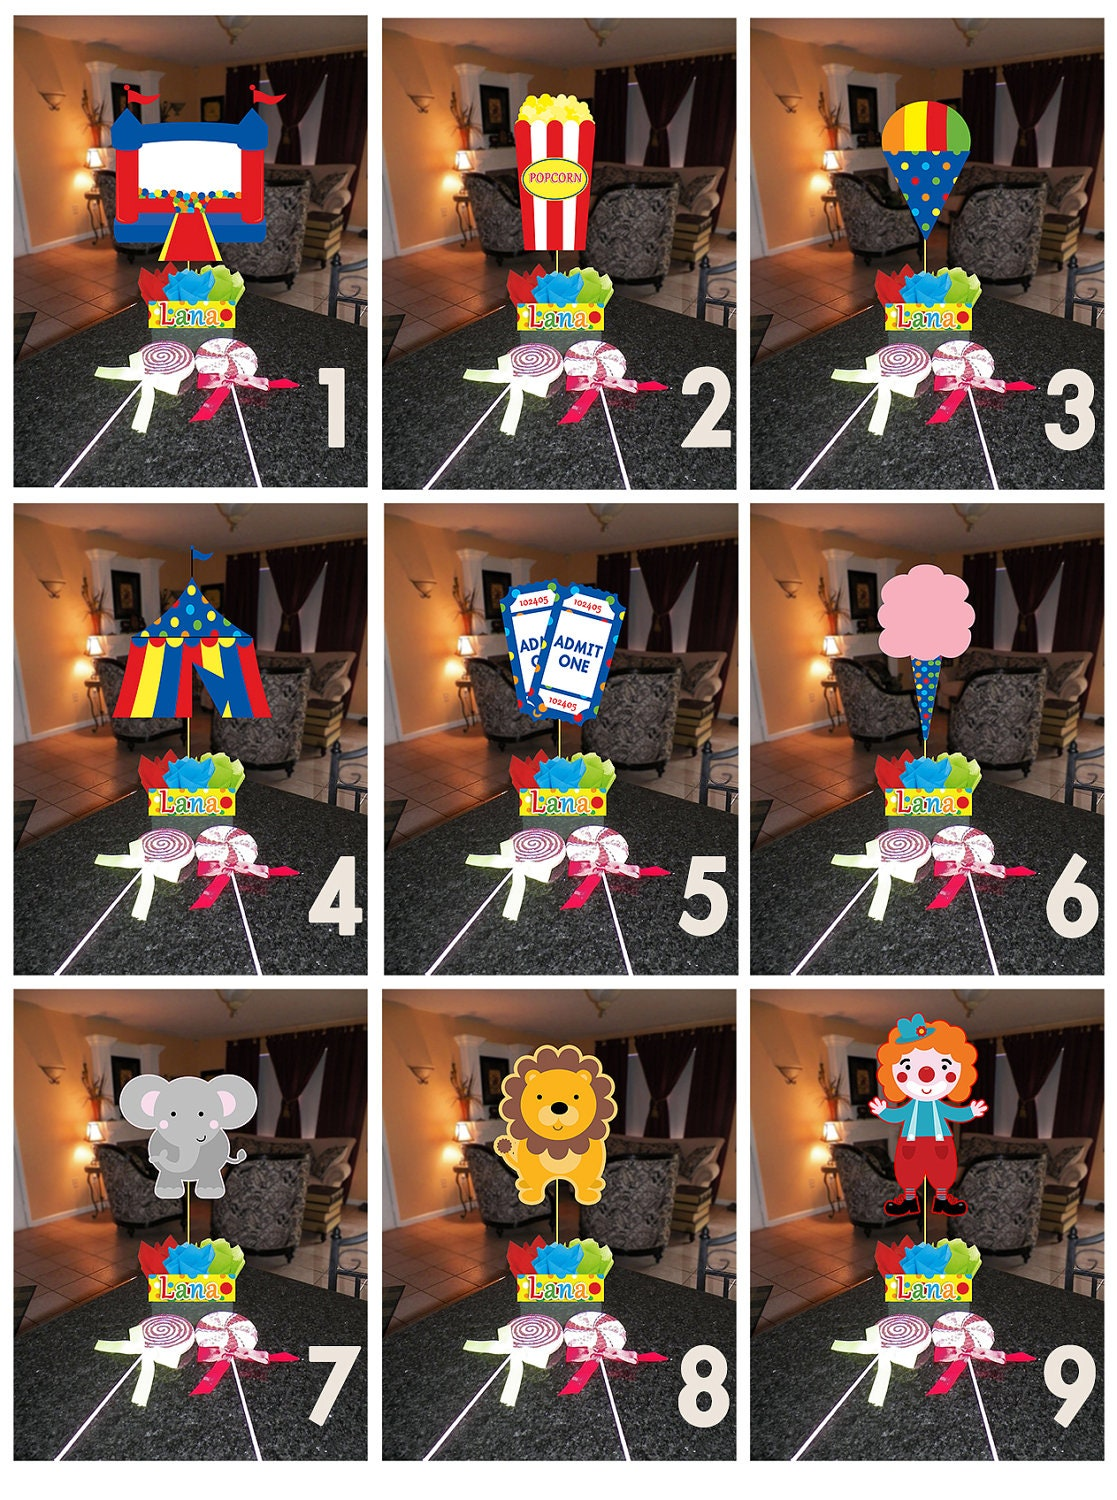 Homemade Circus Decorations Diy Small 12 Carnival Circus Birthday Party Centerpieces